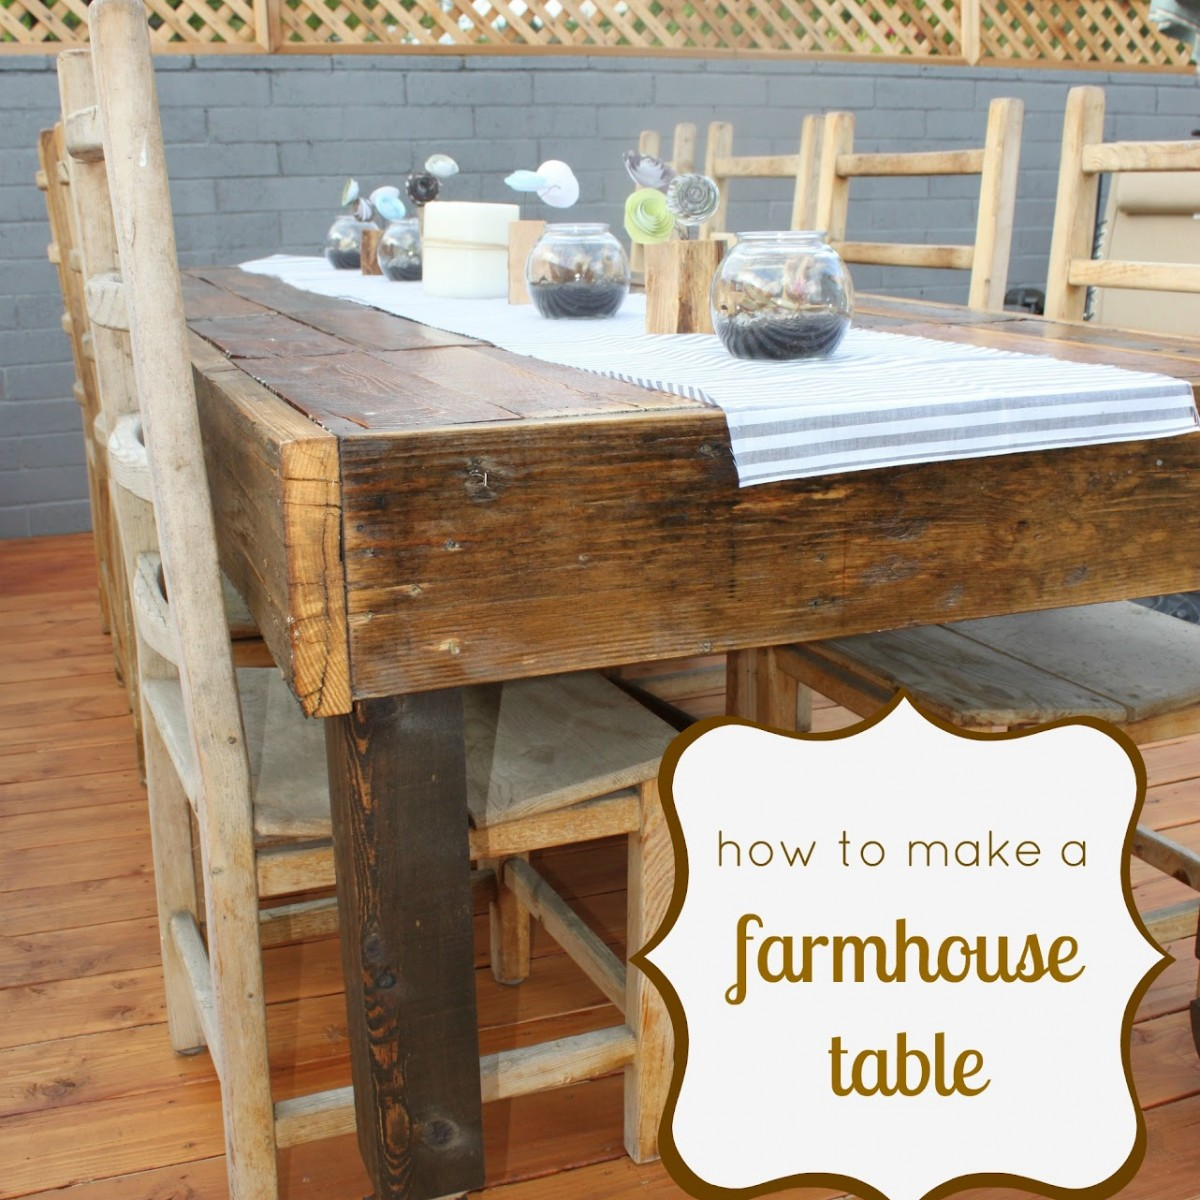 How to make a rustic farmhouse table - How to make a rustic kitchen table ...